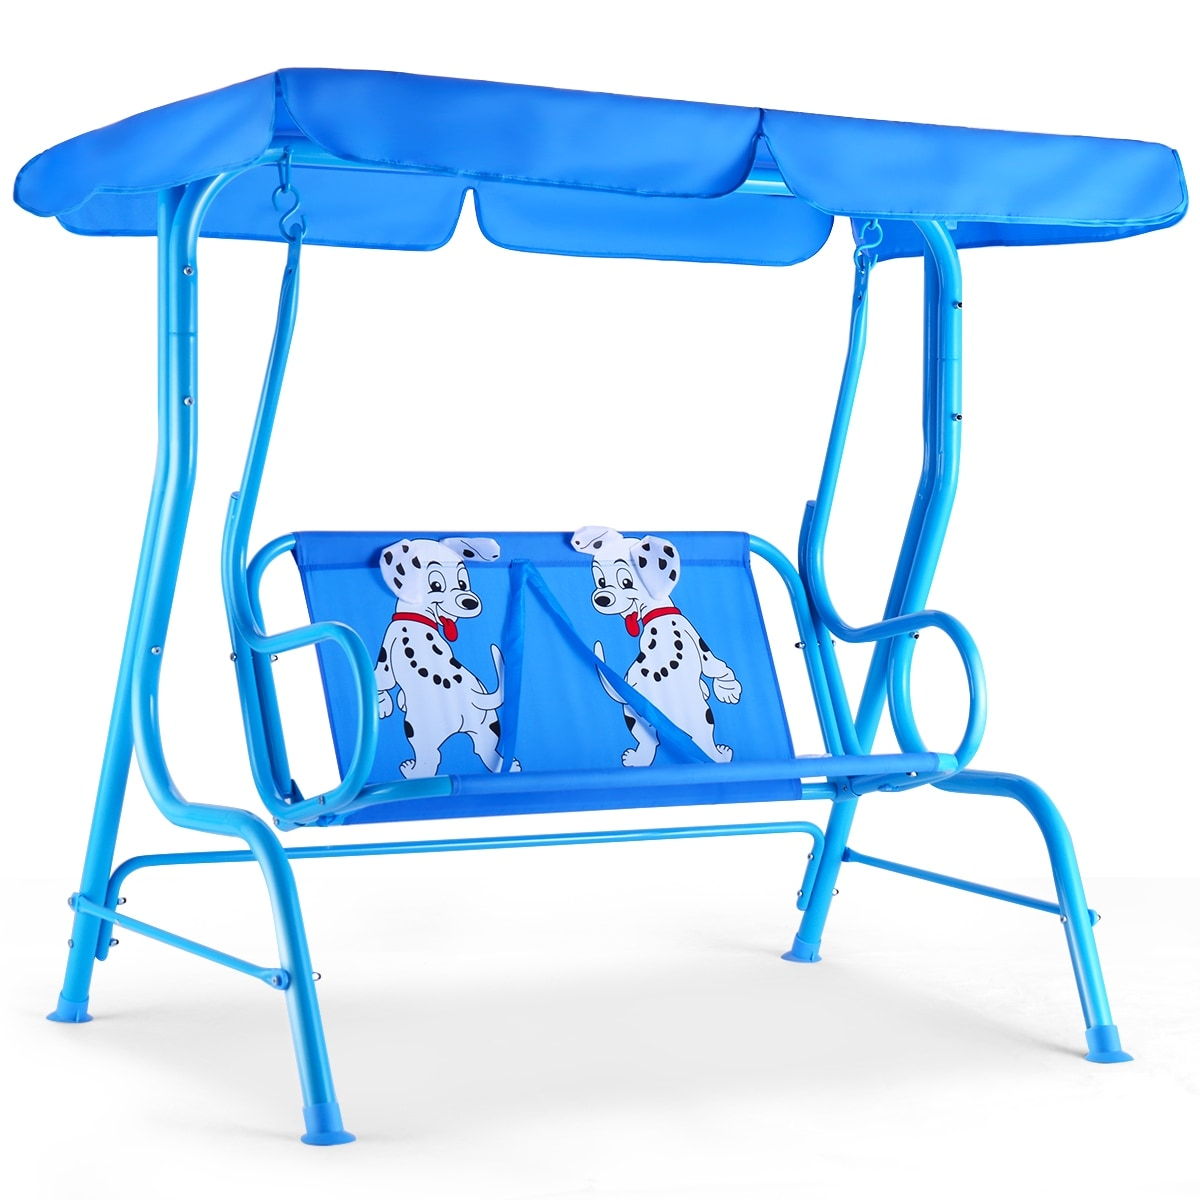 Toddler Soft Chairs Buy Kids Table Chair Sets Online At Overstock Our Best Kids